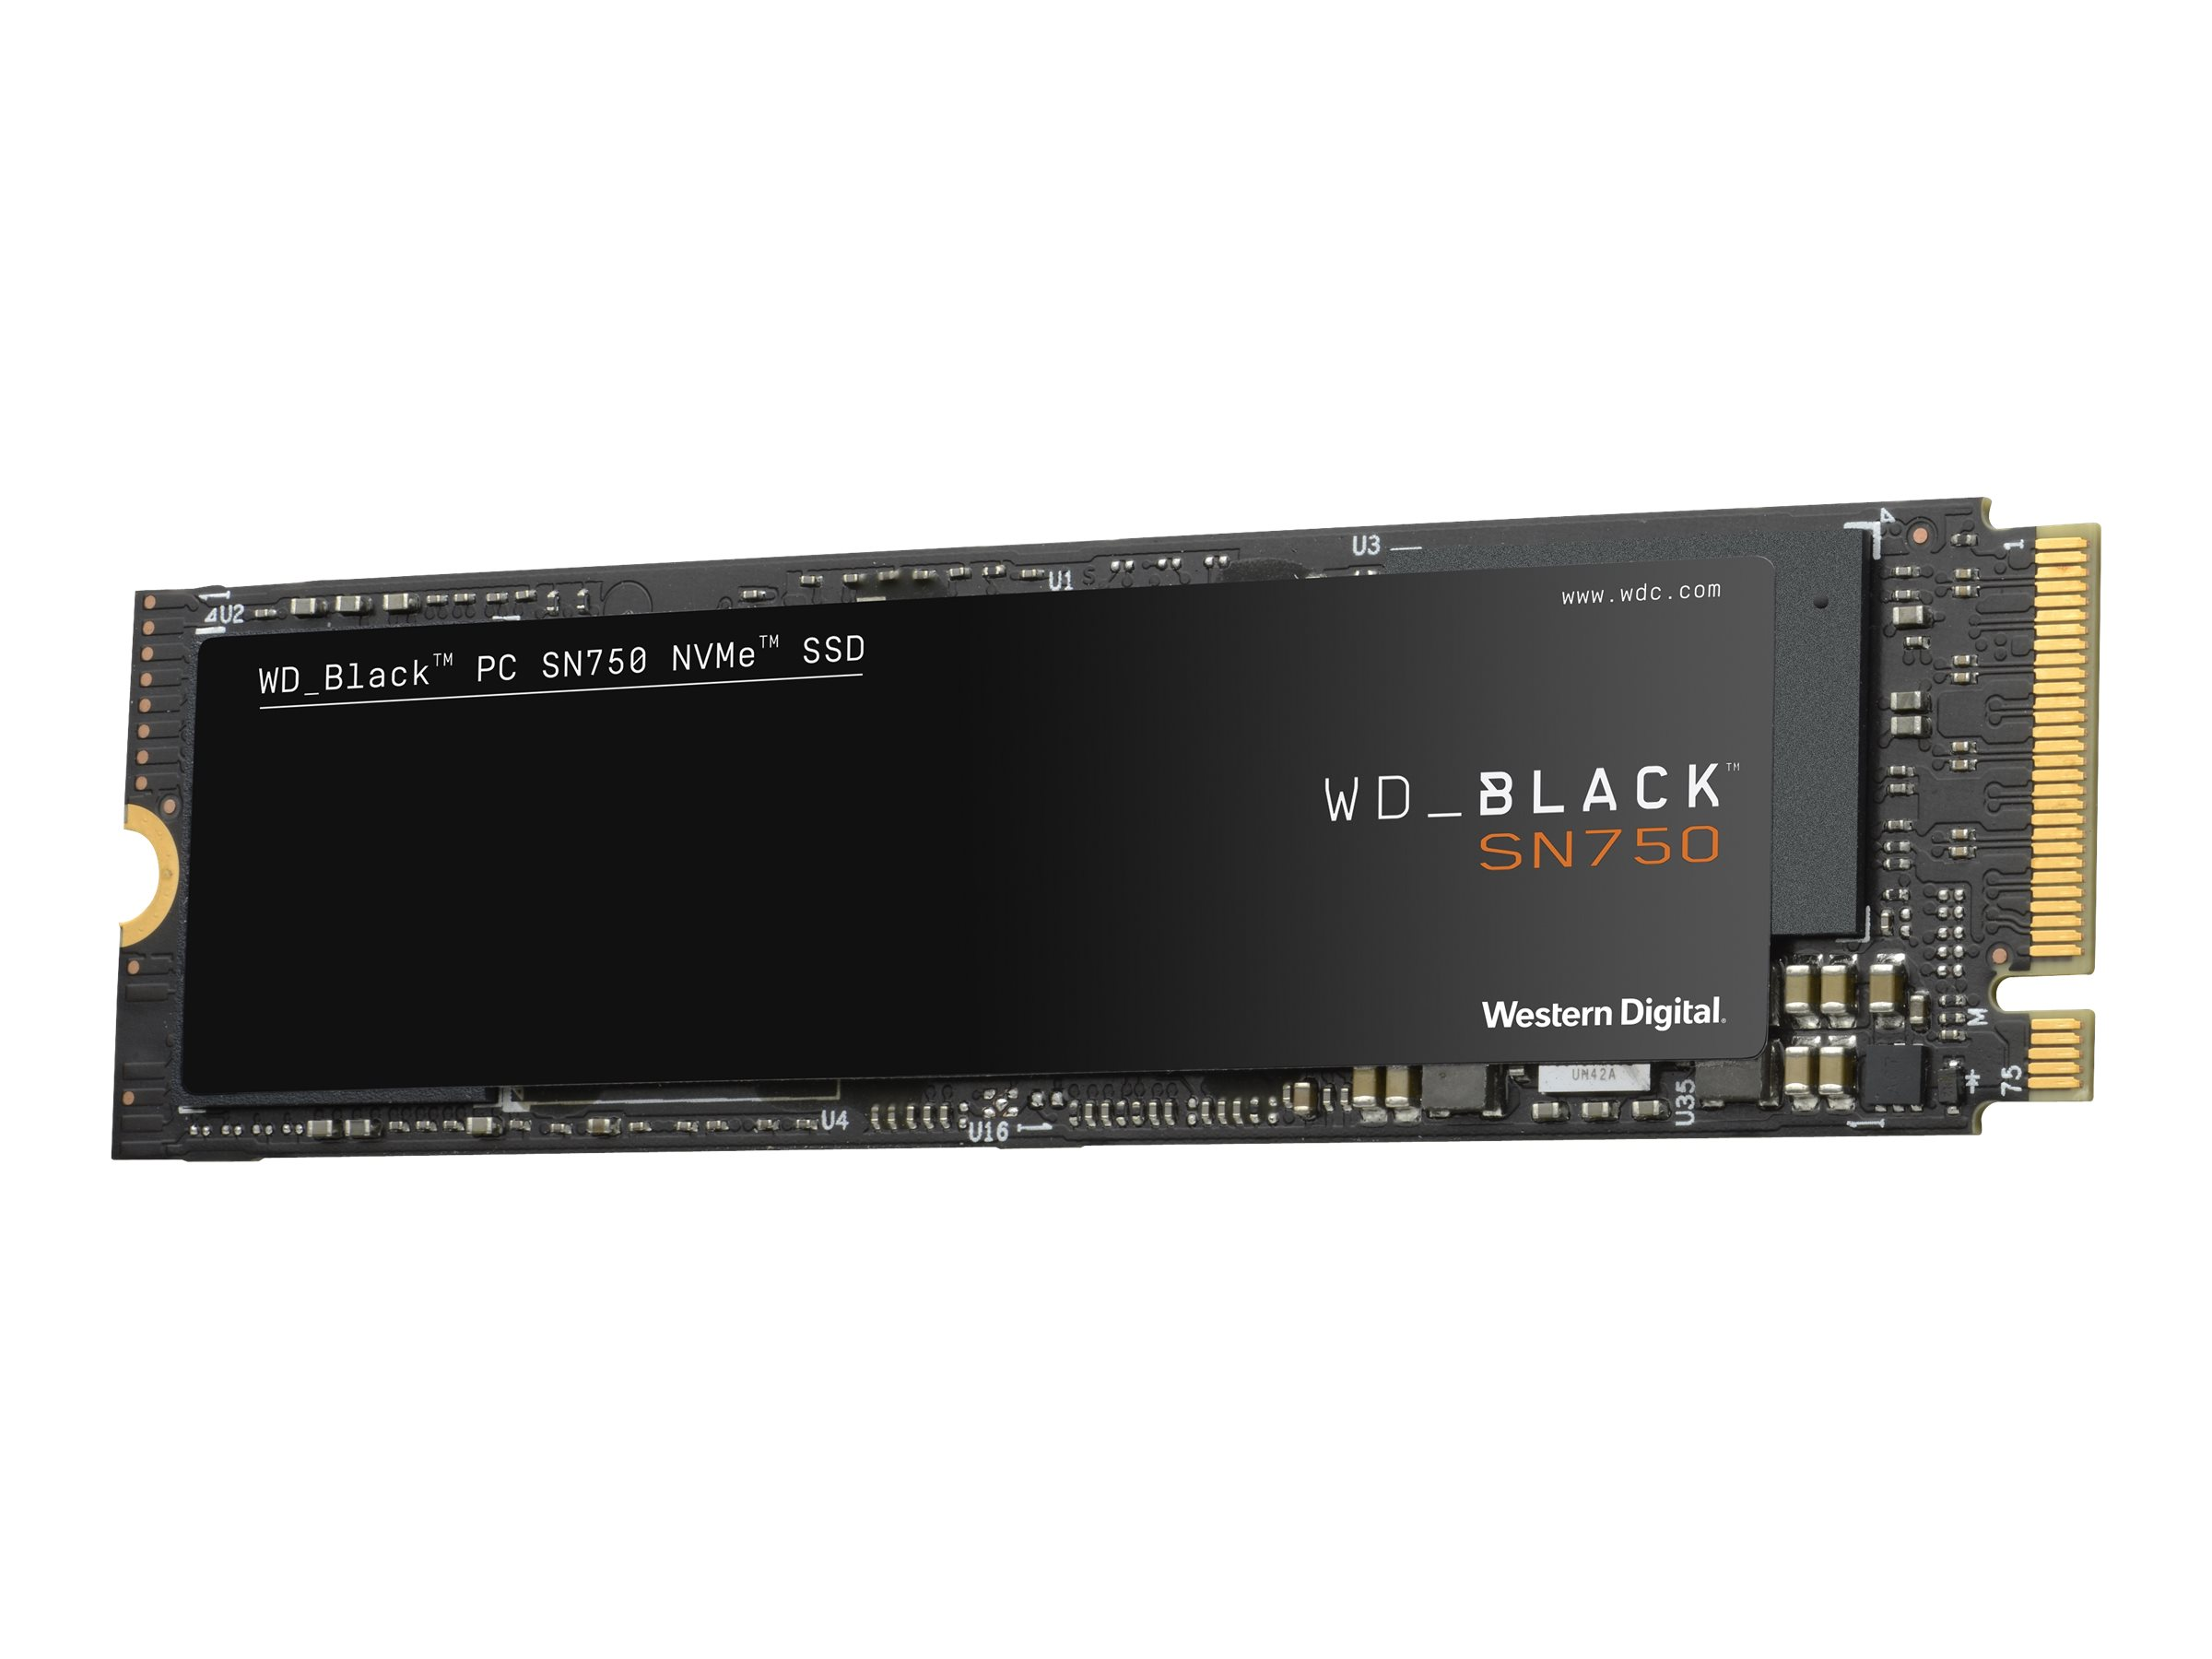 Wd black sn750 nvme ssd wds500g3x0c solid state disk 500 gb intern m 2 2280 pci express 3 0 x4 nvme 10892291 wds500g3x0c